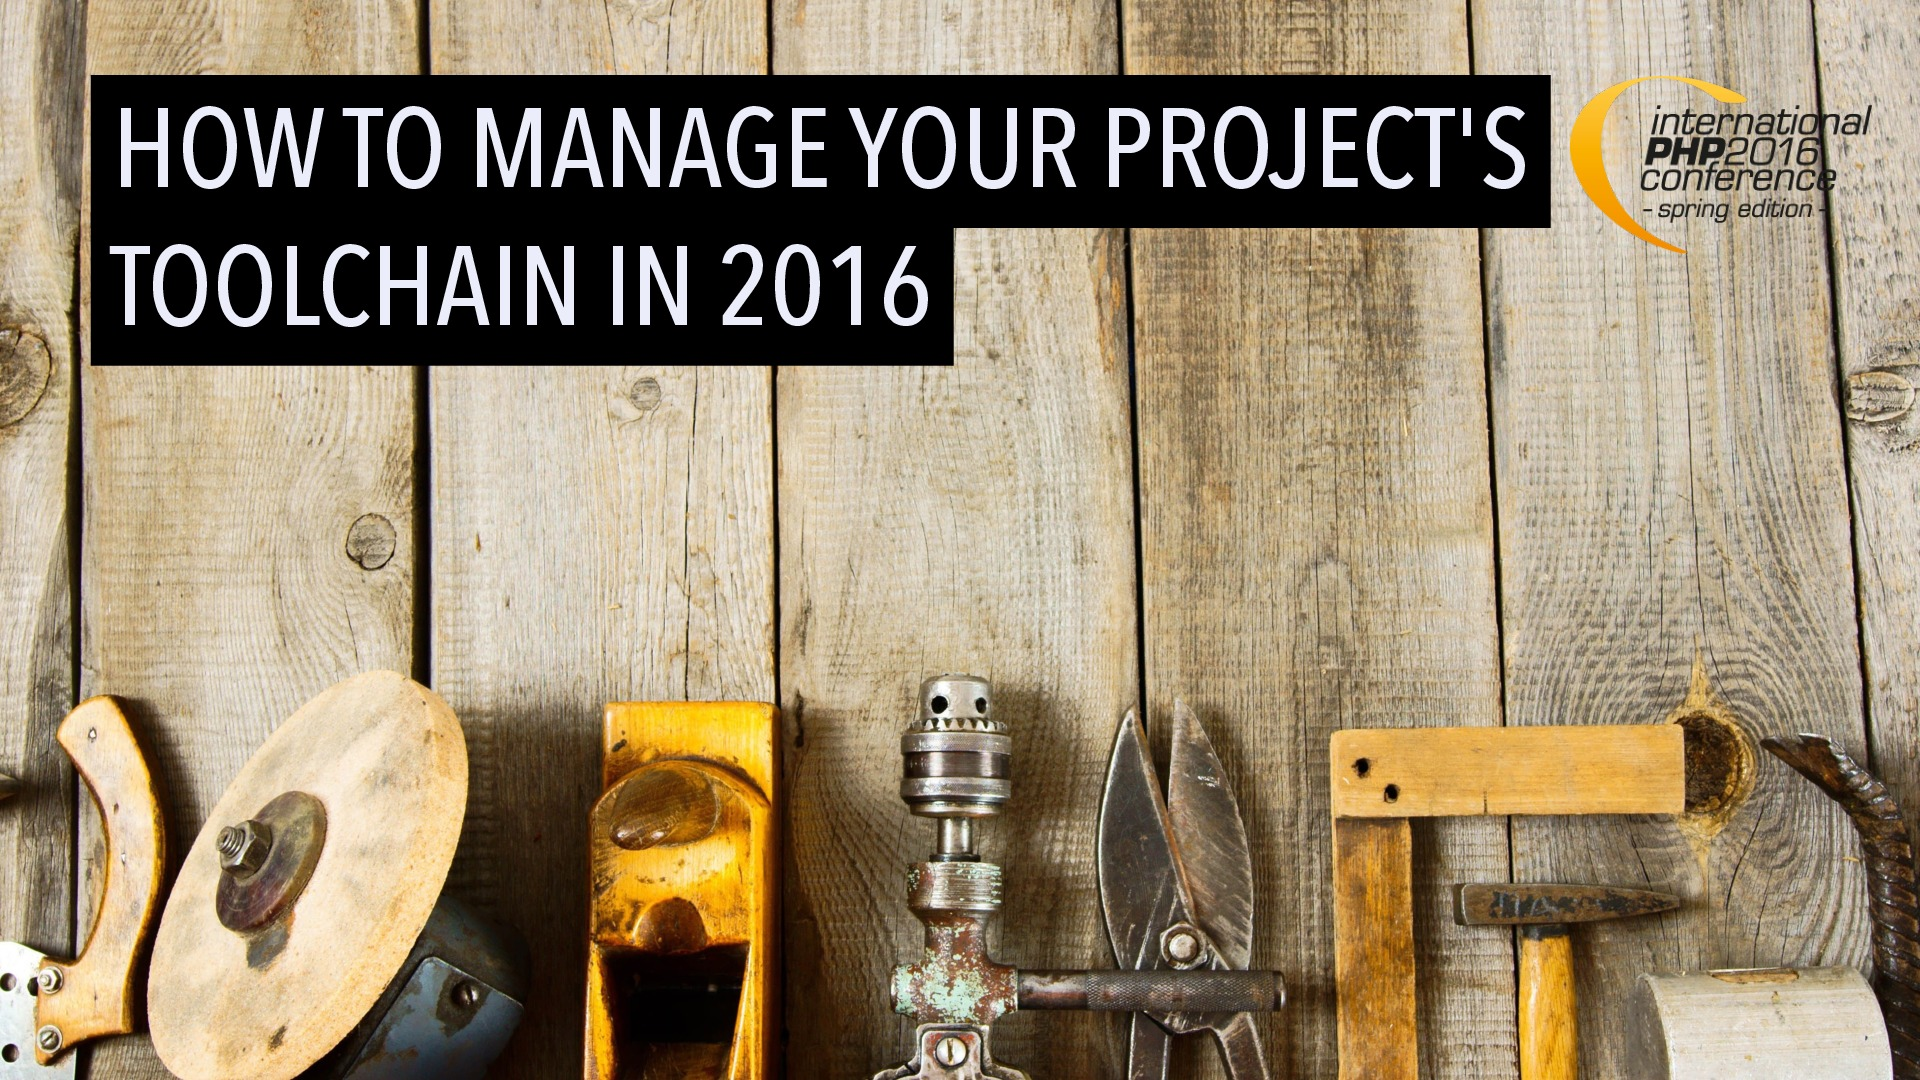 How to manage your project's toolchain in 2016